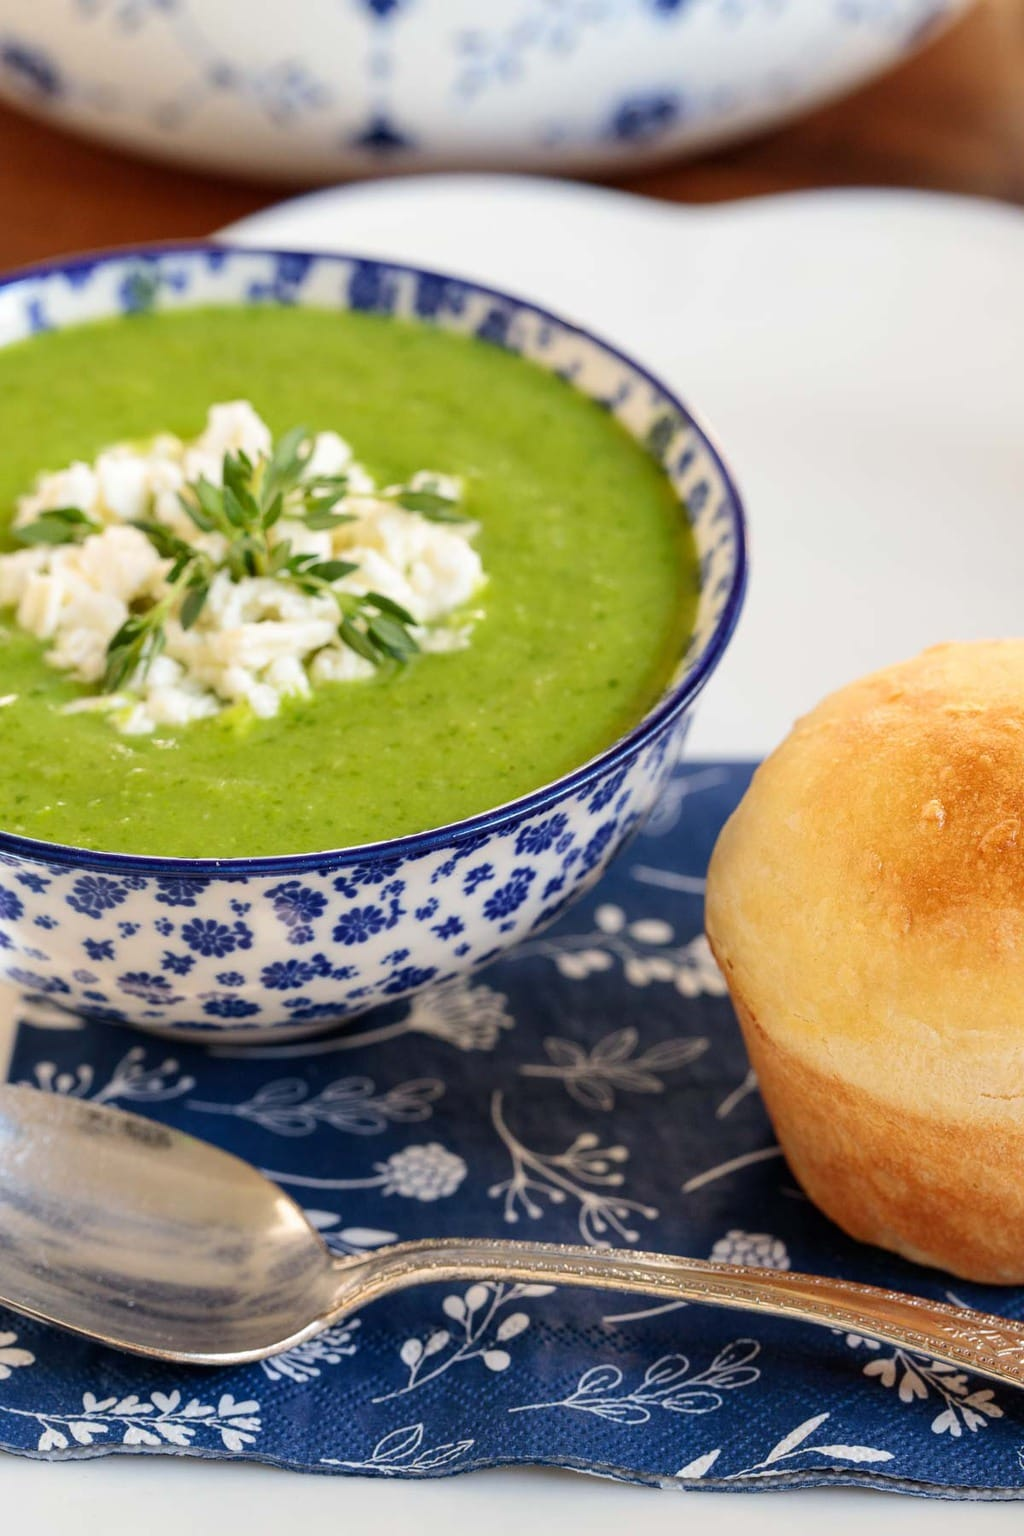 Closeup photo of a serving of Ham and Fresh Pea Soup in a blue and white patterned soup bowl next to a homemade brioche roll.